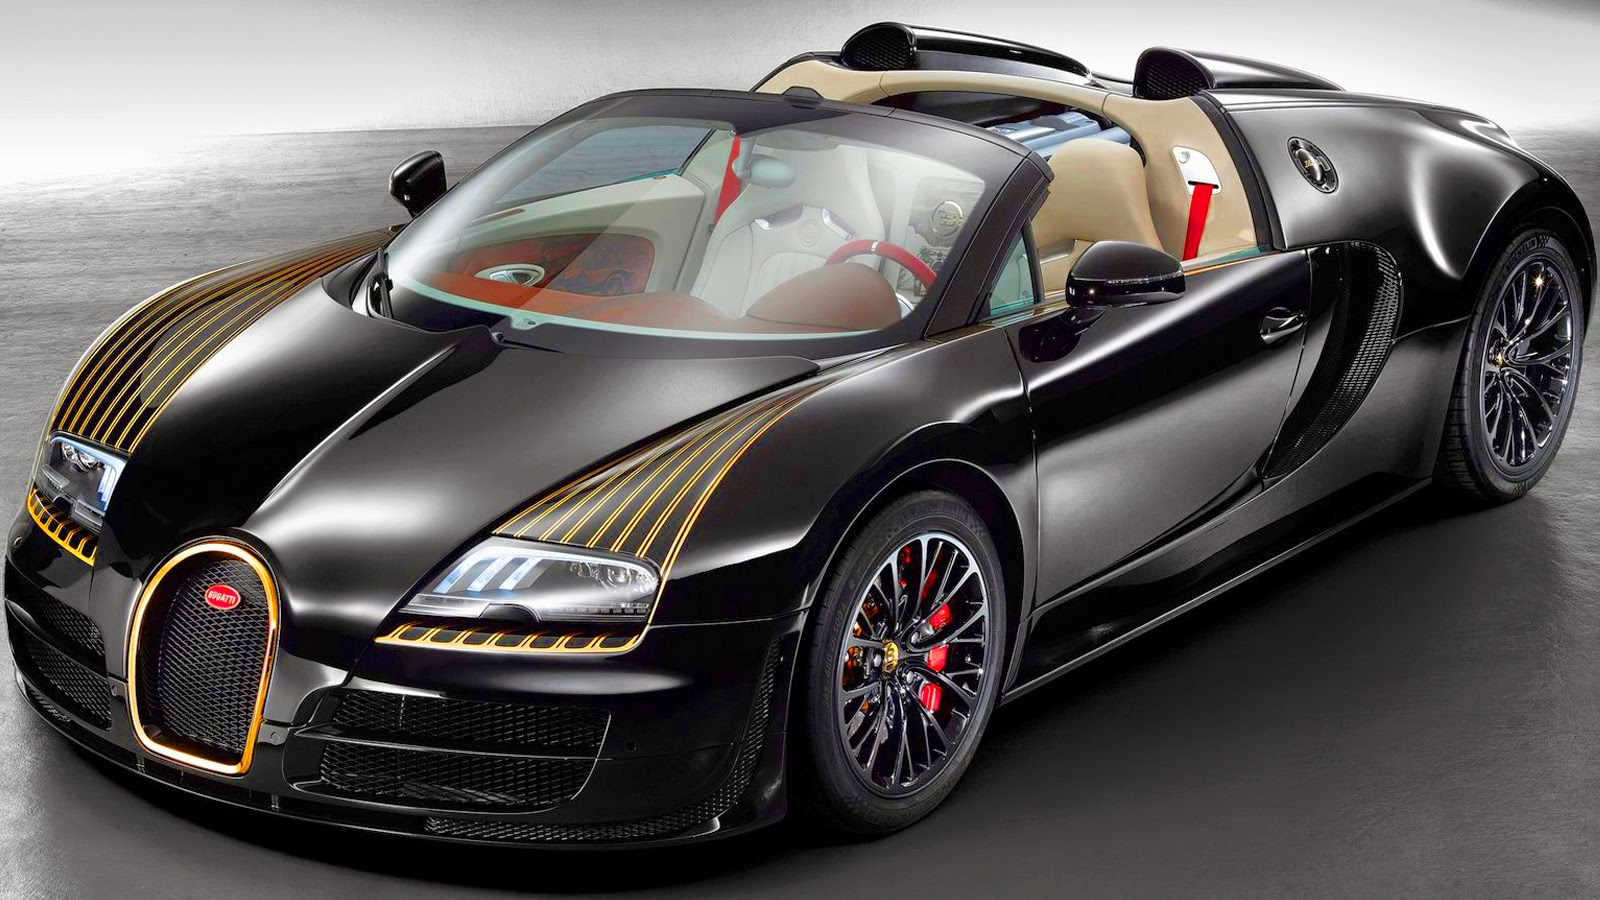 bugatti veyron grand sport vitesse black bess 2014 8 0 w16 quadriturbo cv 153 mkgf 409 kmh. Black Bedroom Furniture Sets. Home Design Ideas